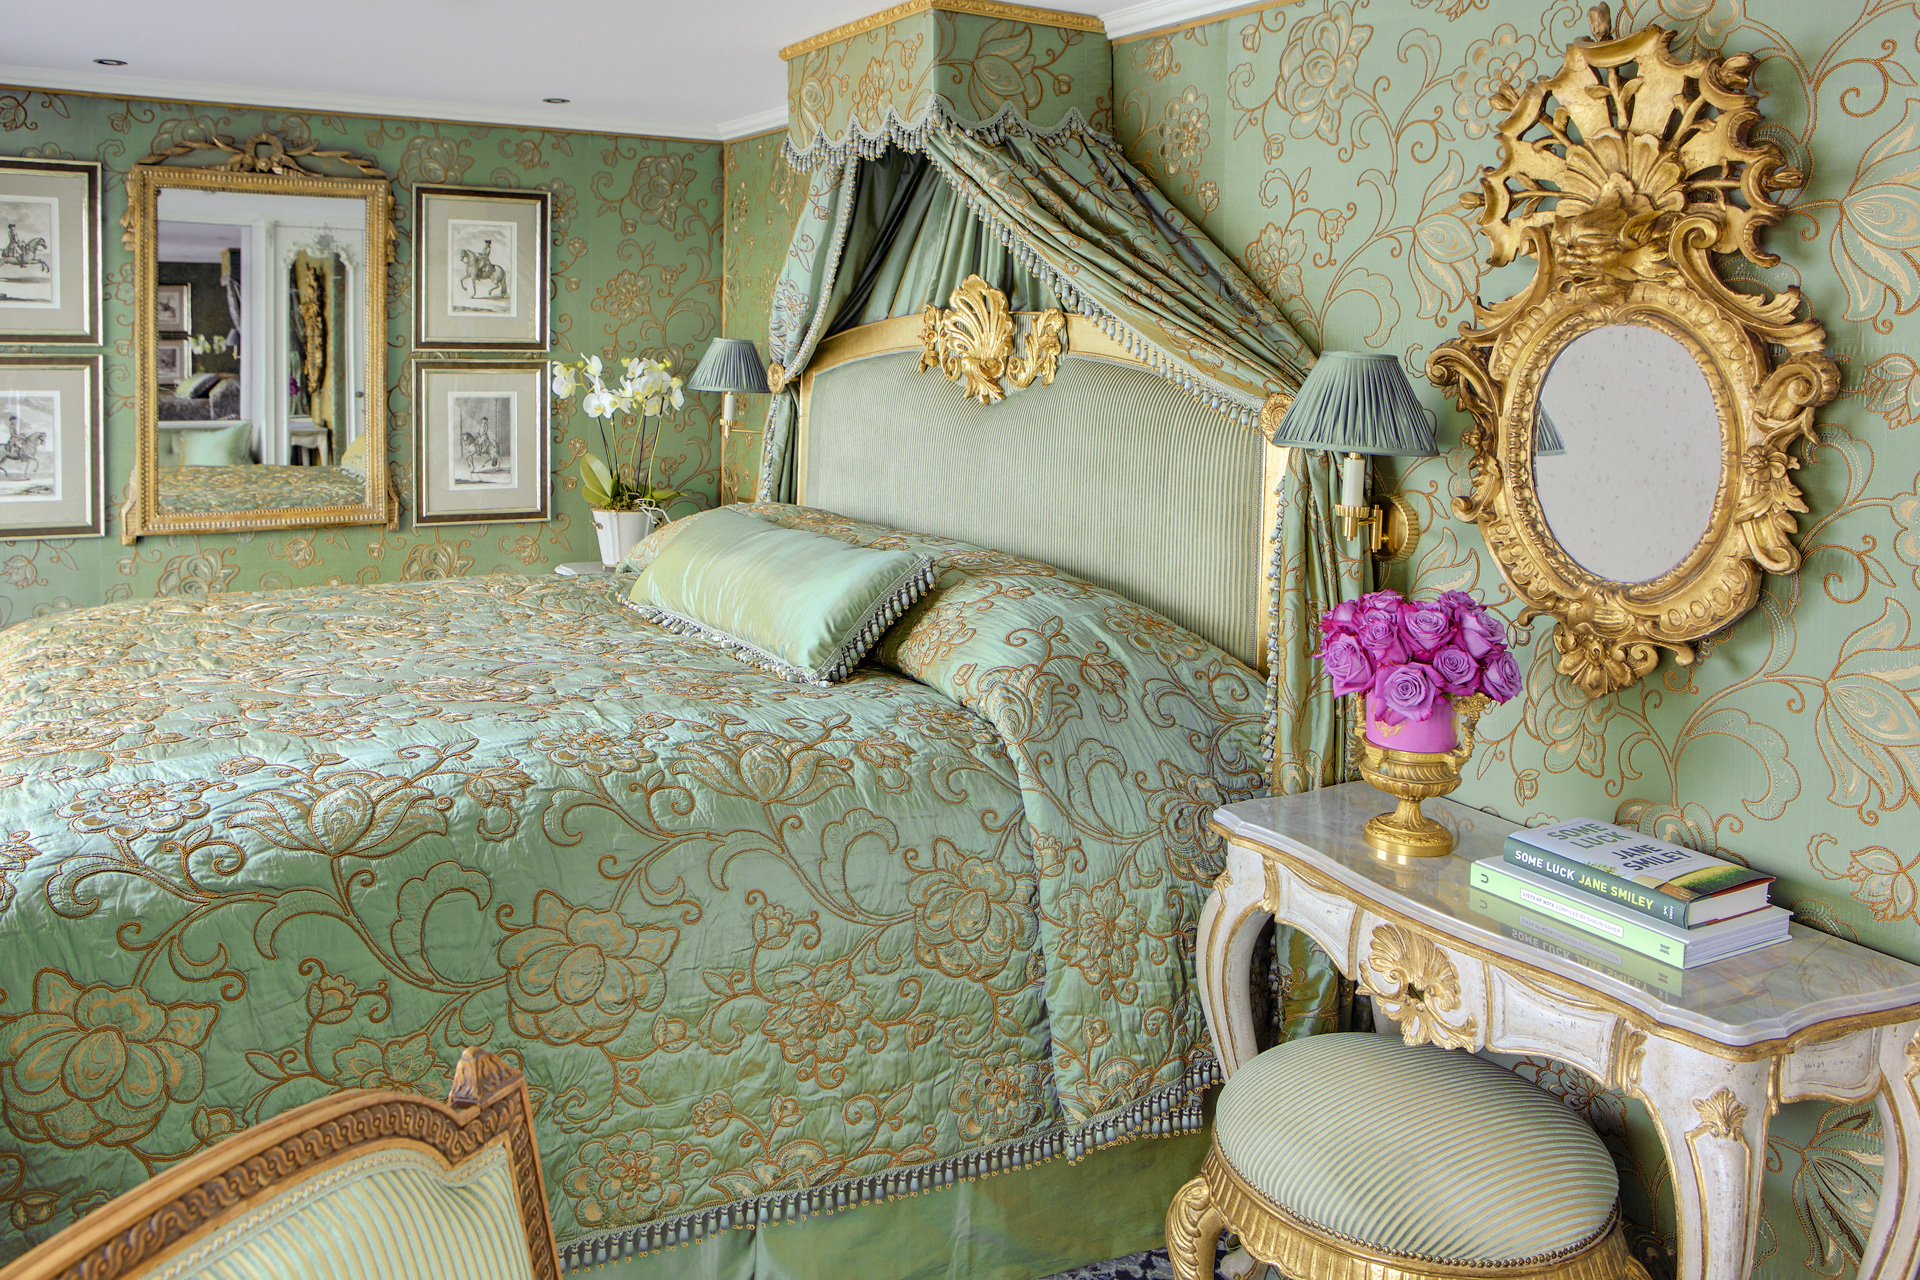 UNIWORLD Boutique River Cruises SS Maria Theresa Accommodation Suite 406 1.jpg